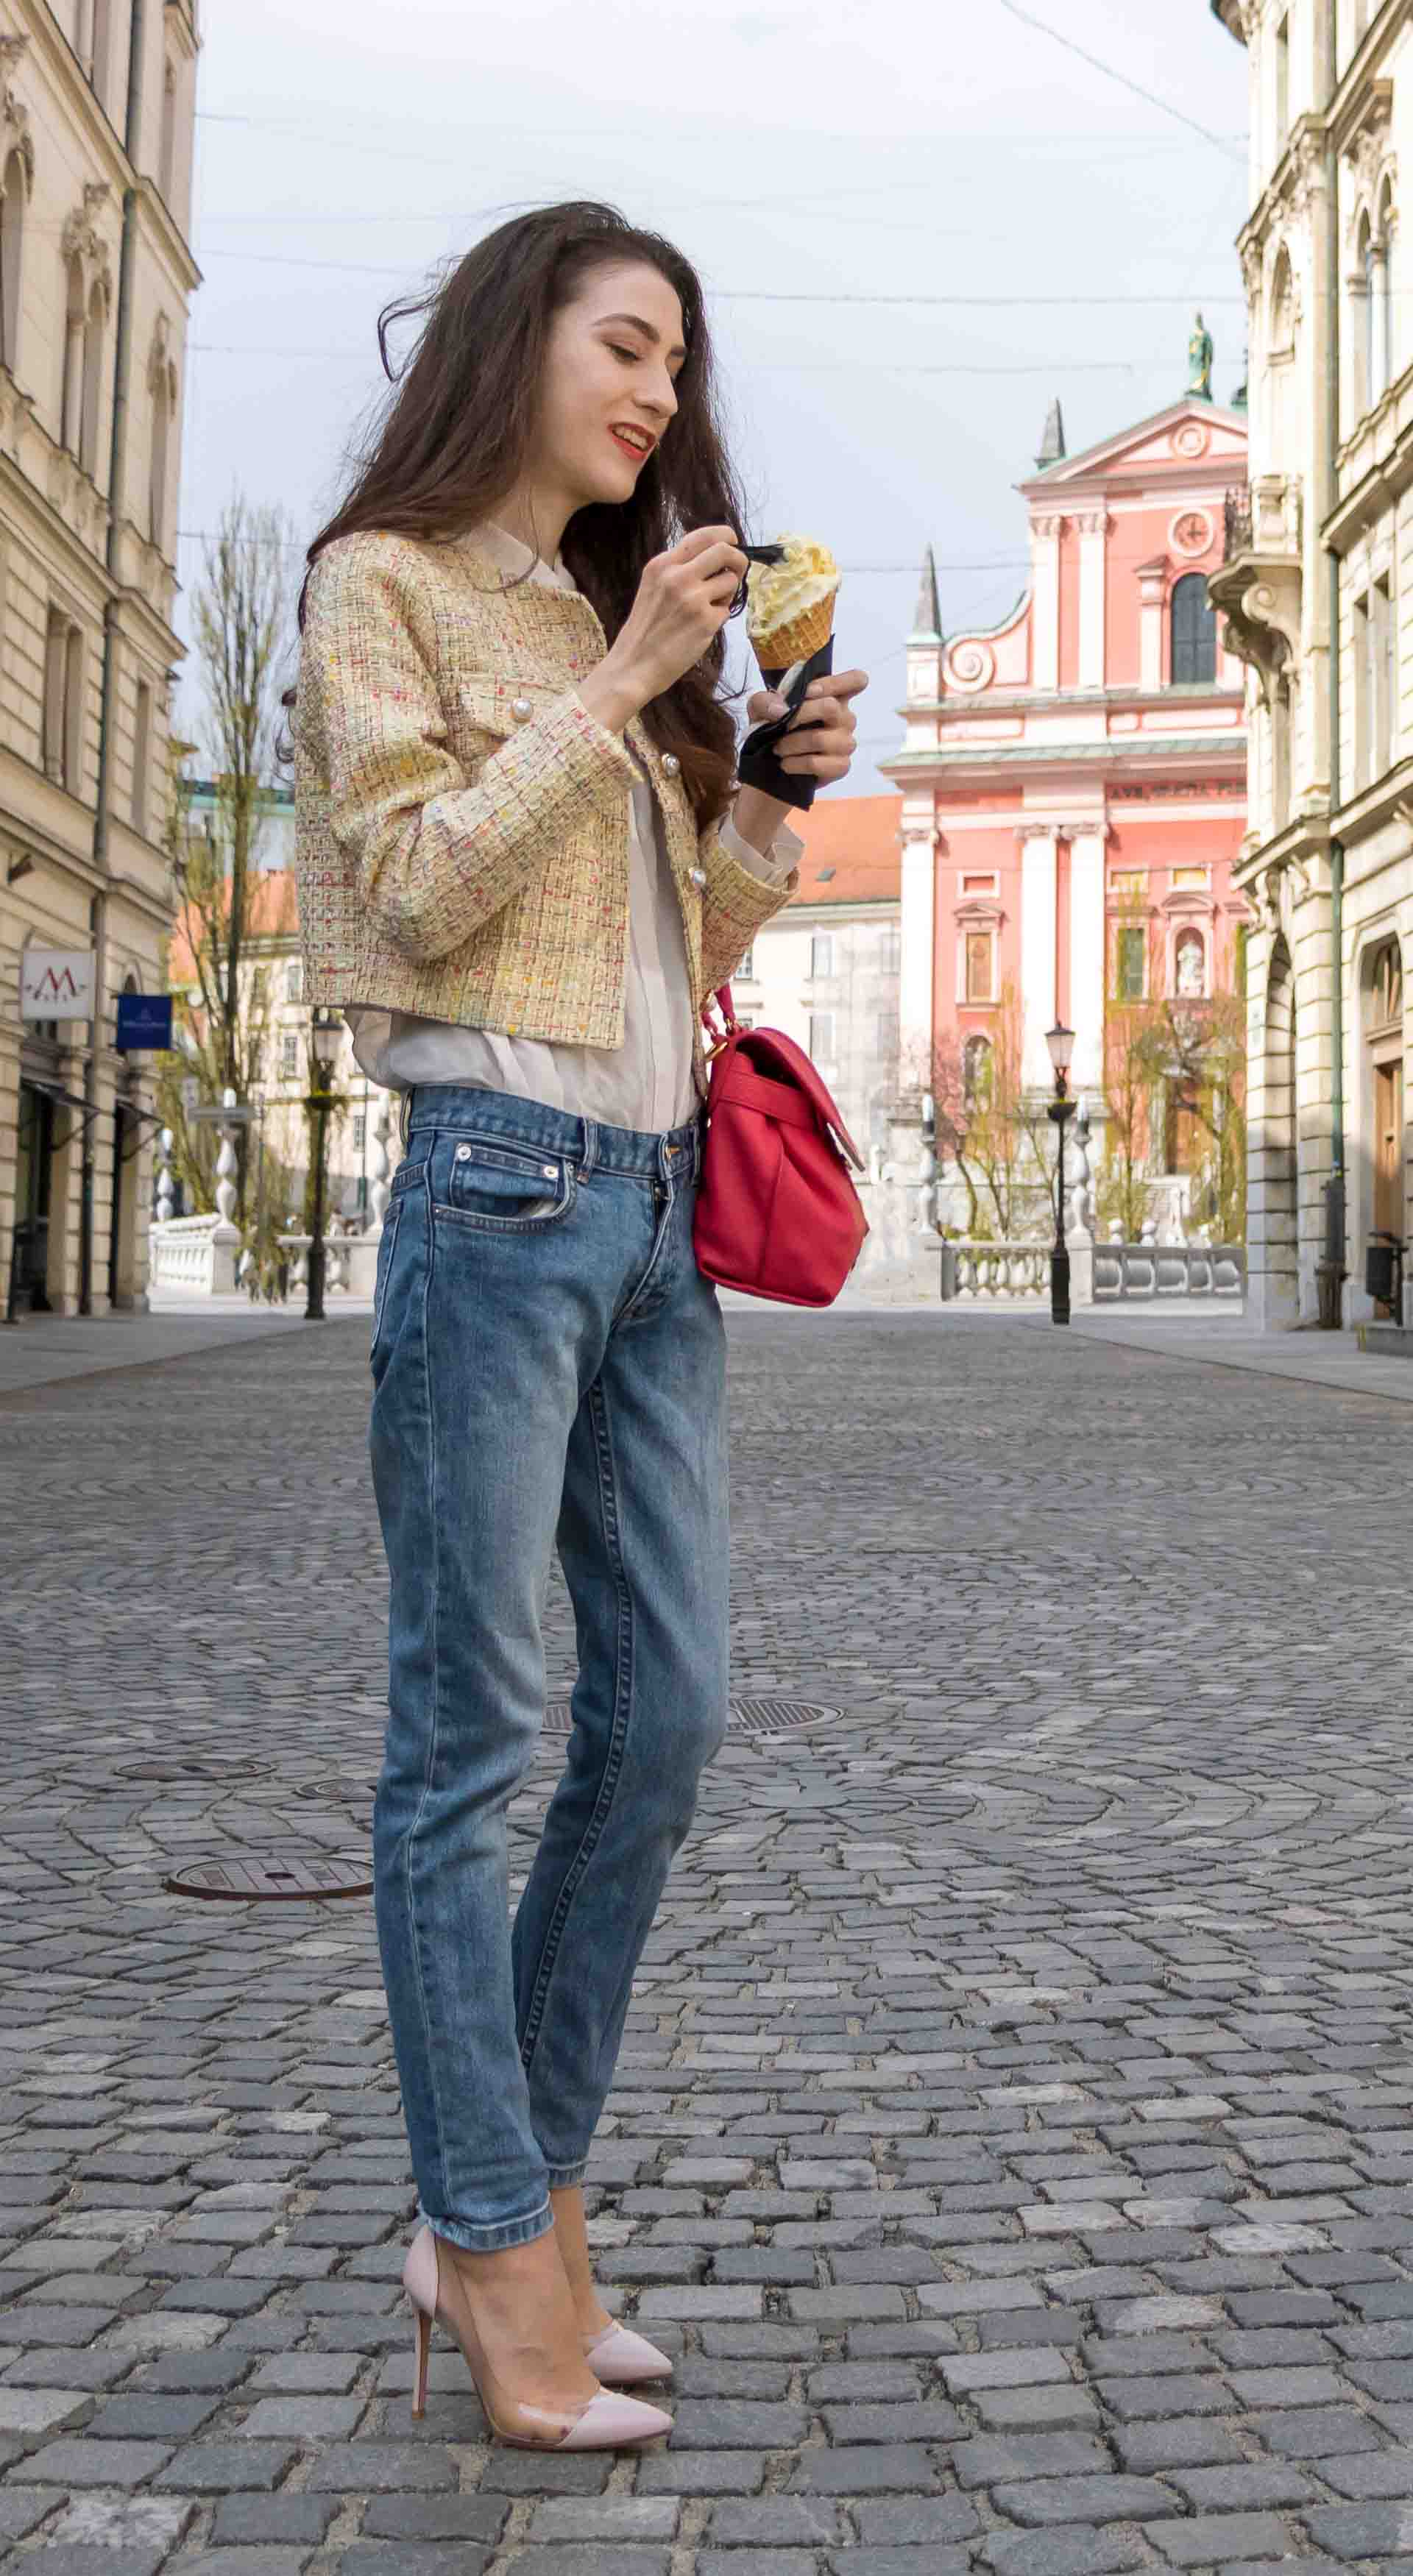 Veronika Lipar Fashion Blogger of Brunette from Wall Street dressed in chic casual everyday spring outfit, the yellow tweed jacket from Storets, blue jeans from A.P.C., blush Gianvito Rossi plexi pumps, pink top handle bag and organza for ice cream date